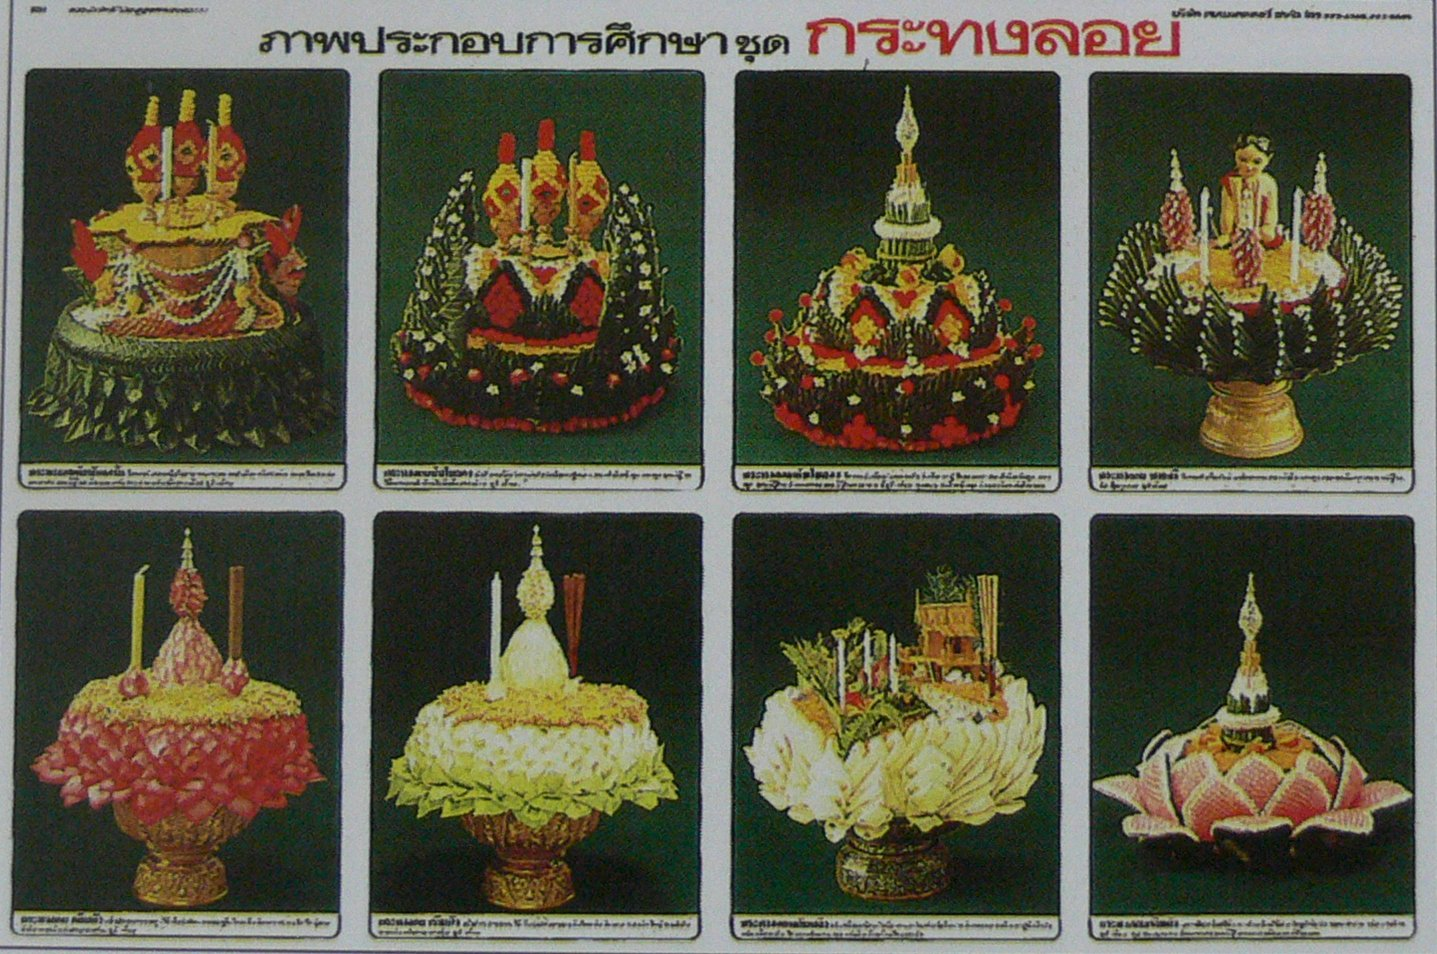 Thai Traditional Style Floating Basket Poster Banana Leaf Candle Incense Garland